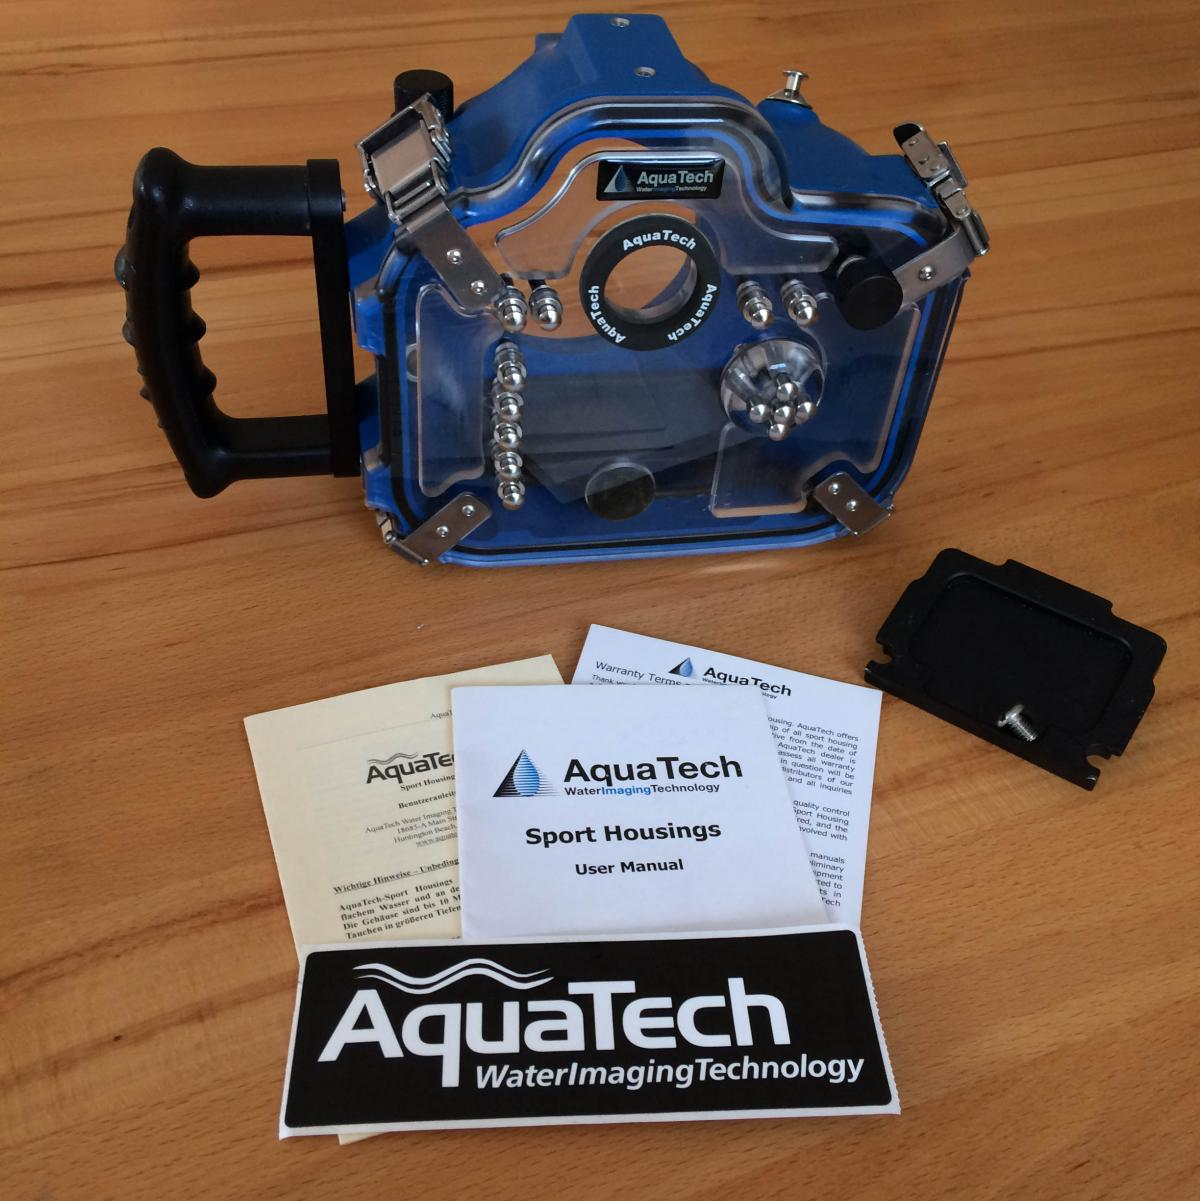 AquaTech ND-7 Underwater Housing for Nikon D700.jpg